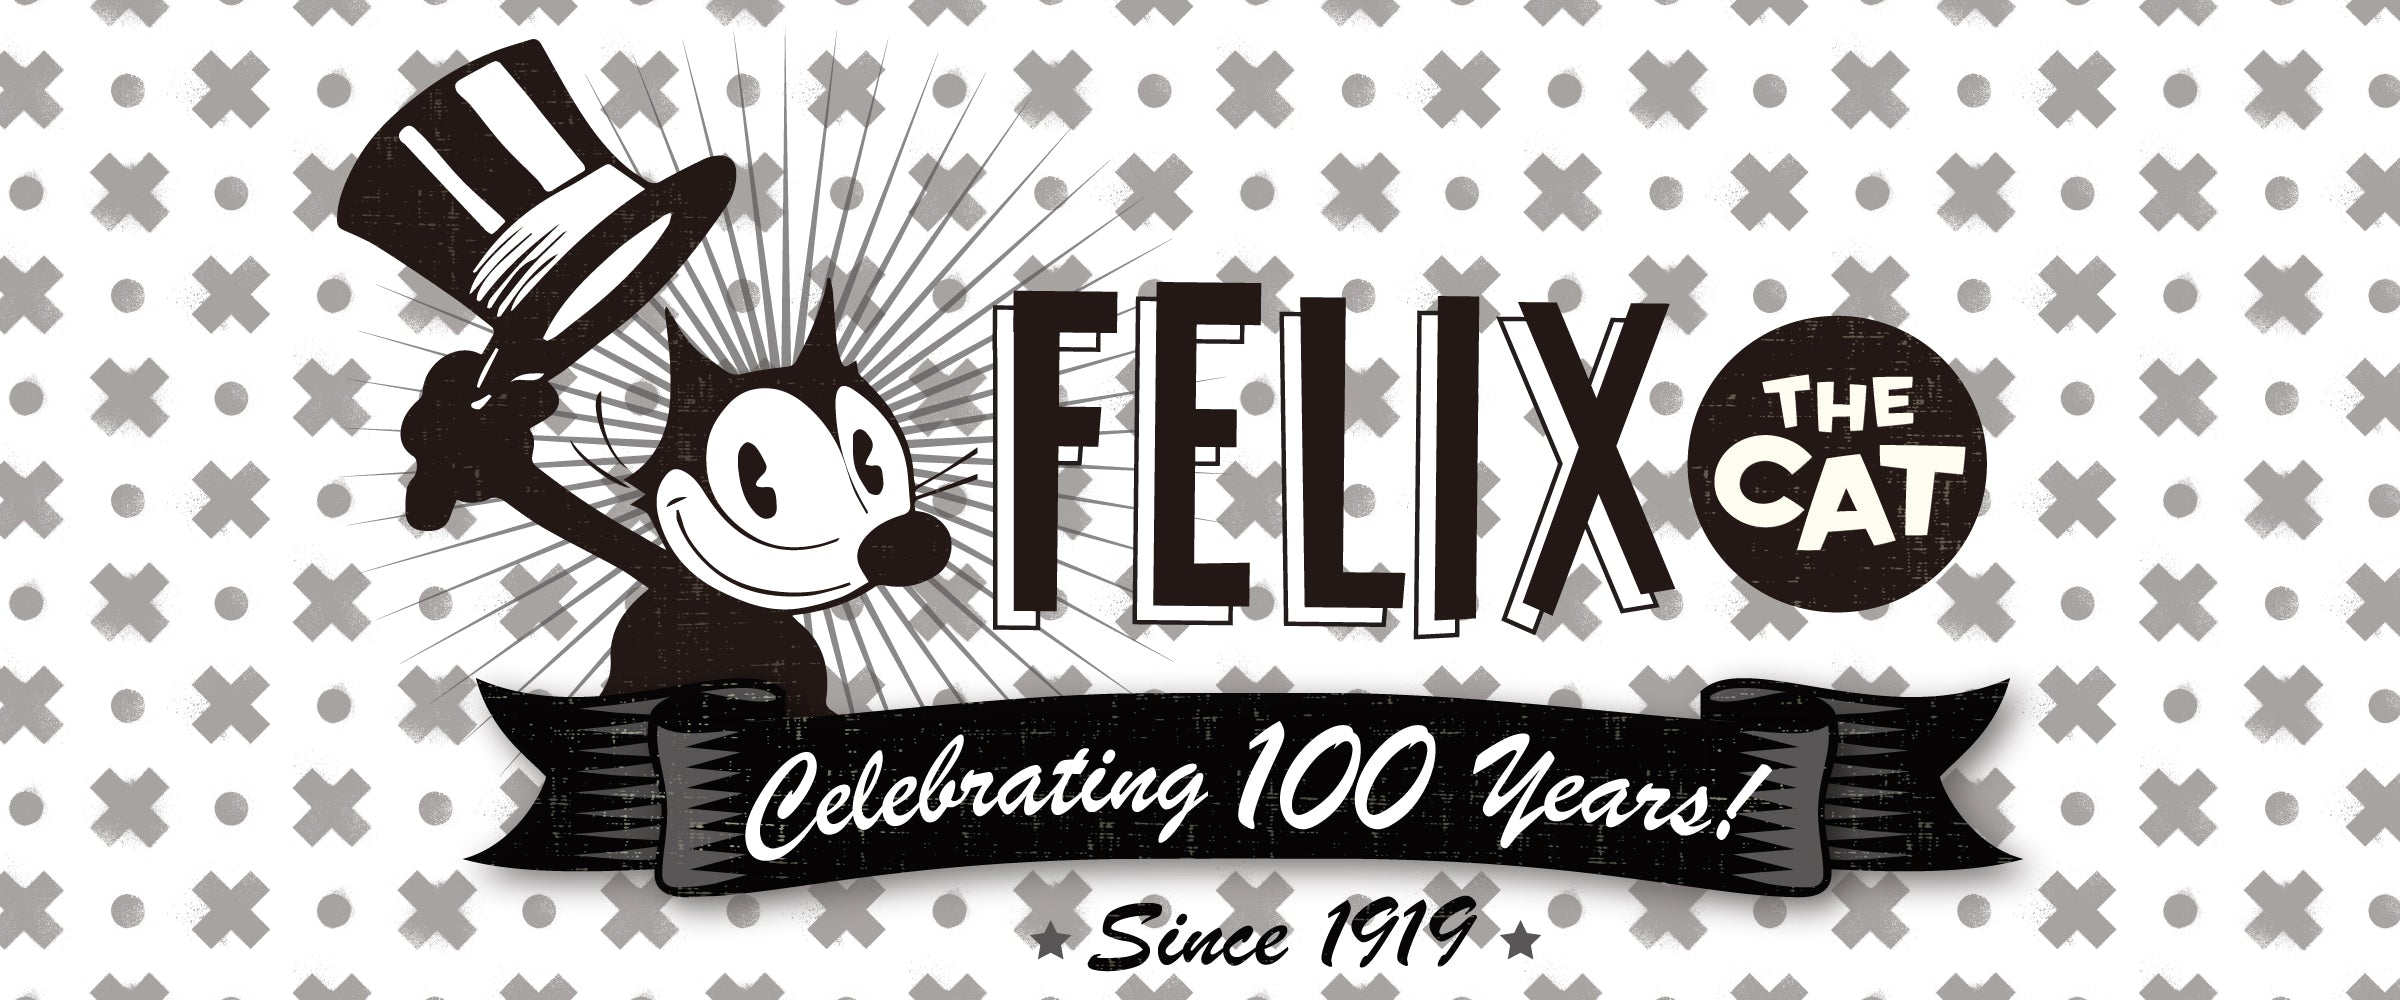 Felix The Cat 100th Anniversary x FION